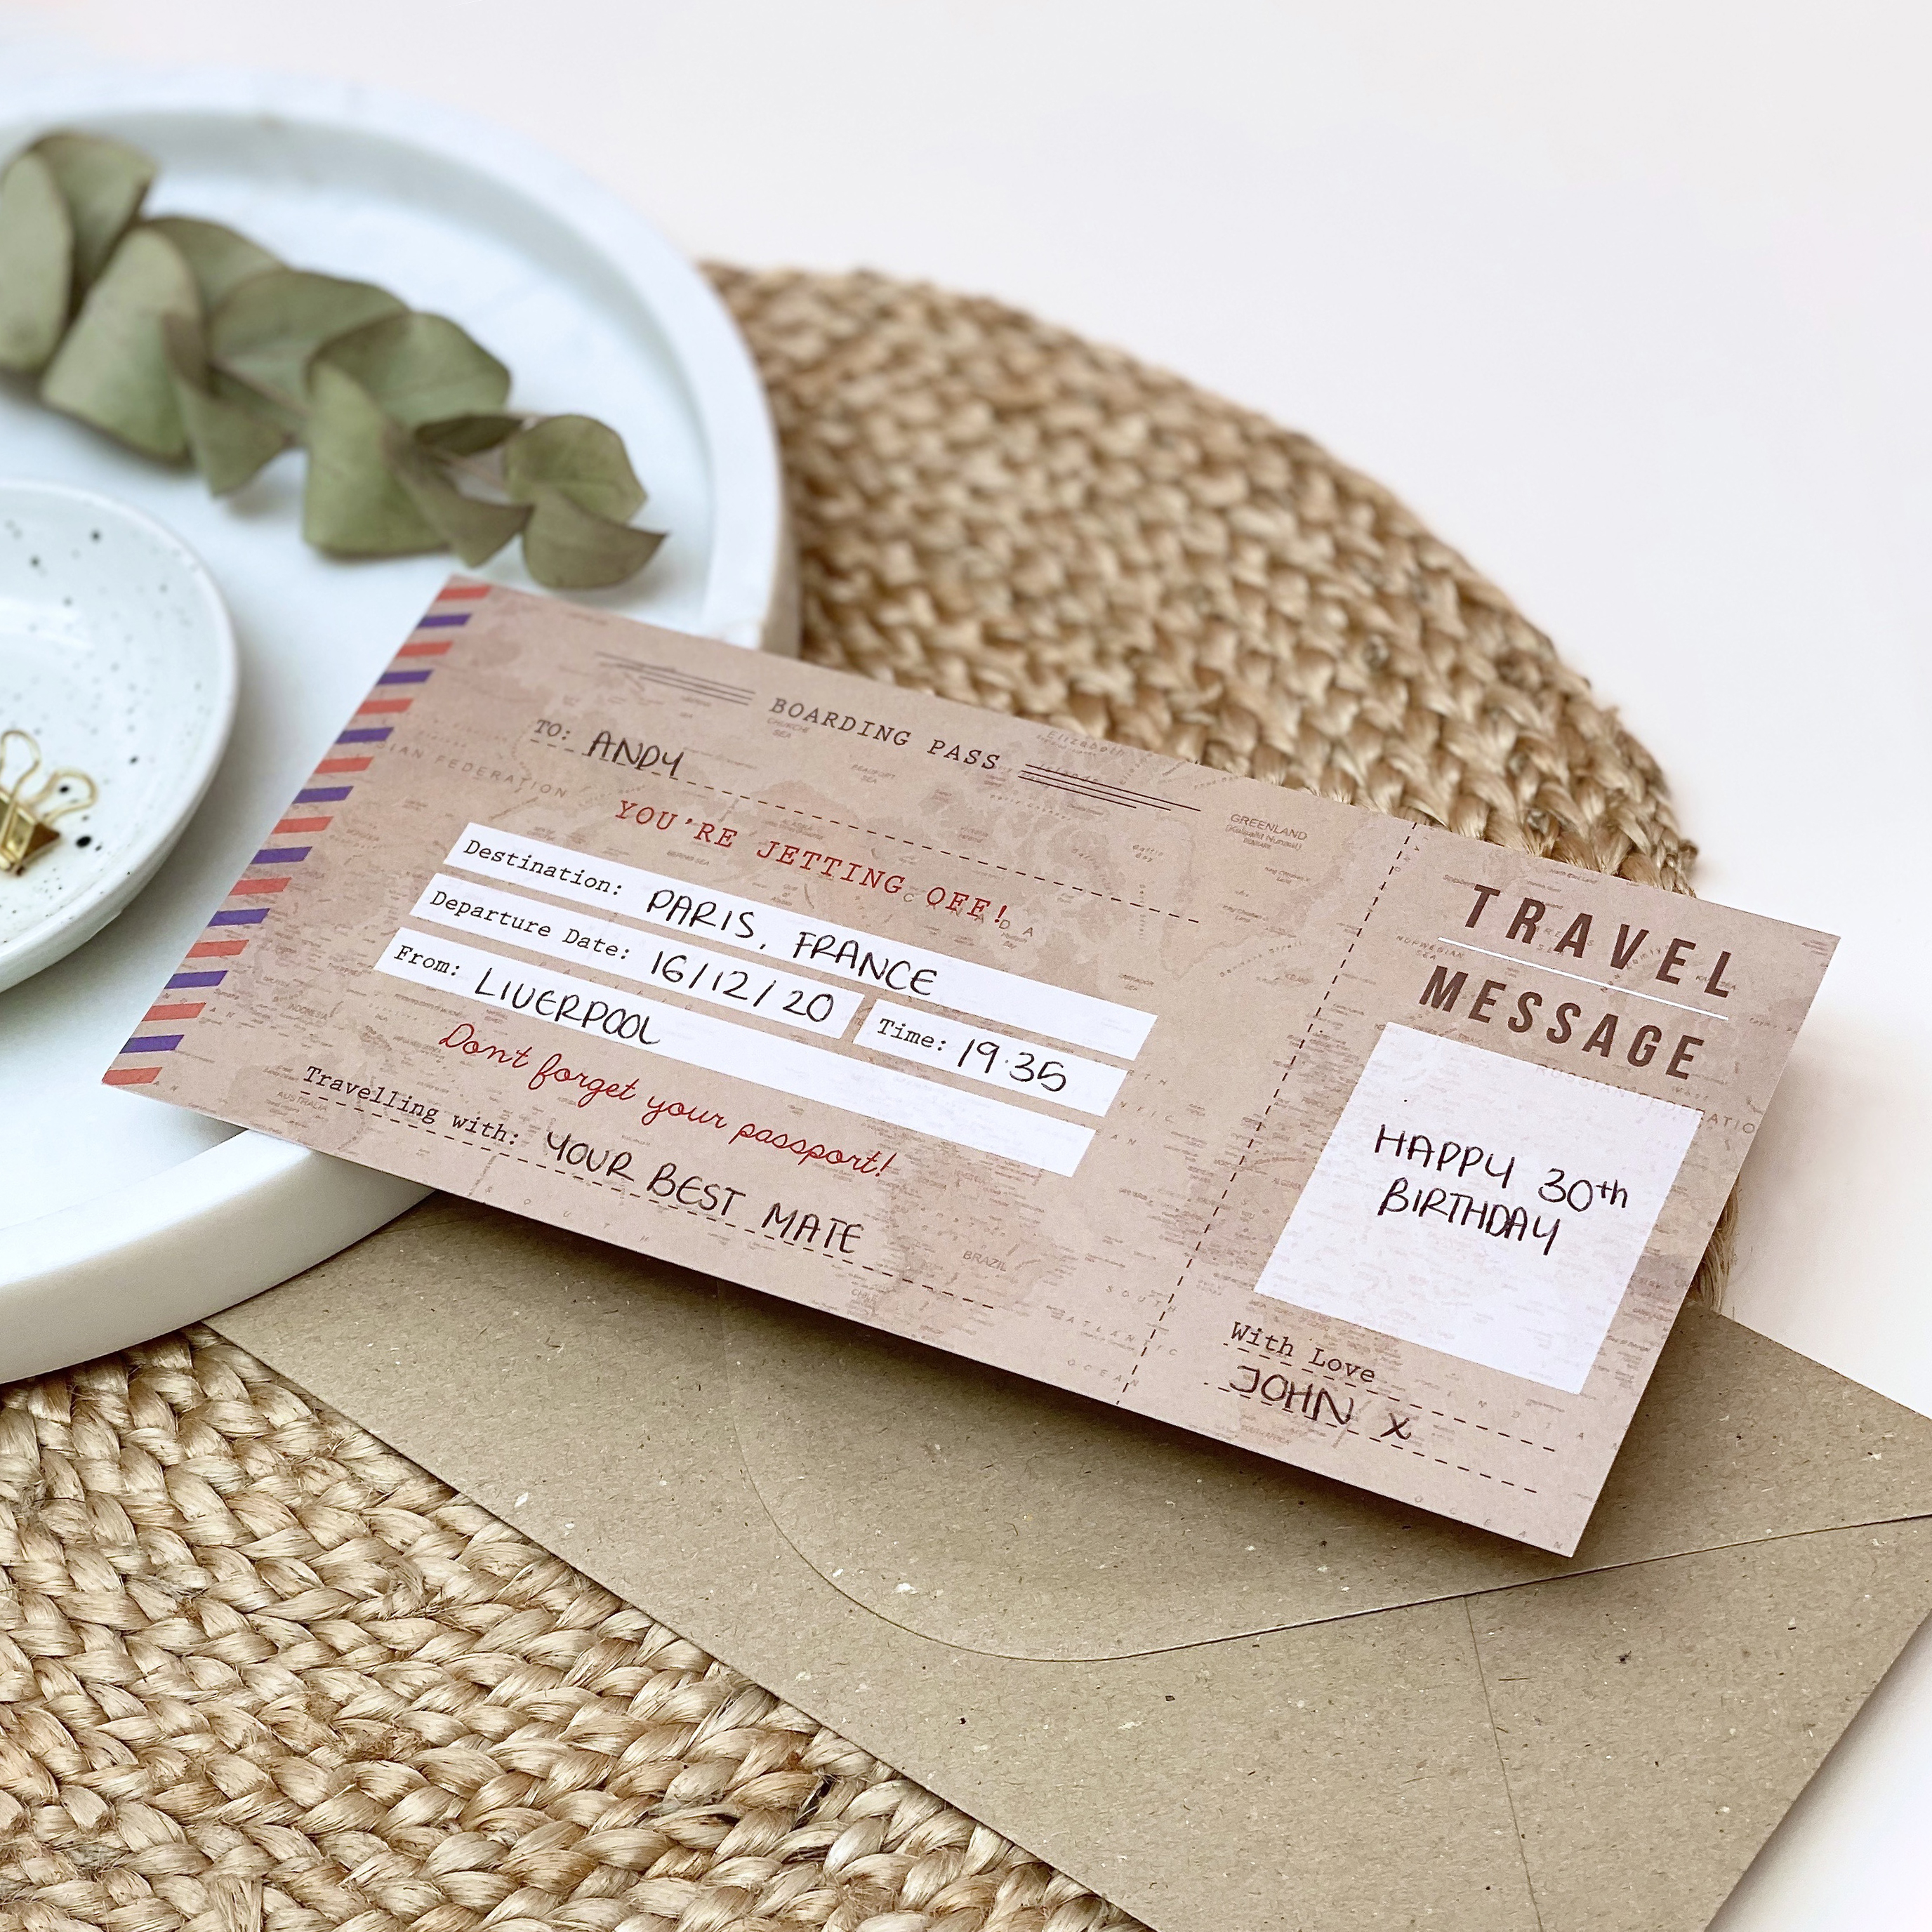 Vintage Boarding Pass - Designed by Rodo Creative - Wedding stationery and greetings card design